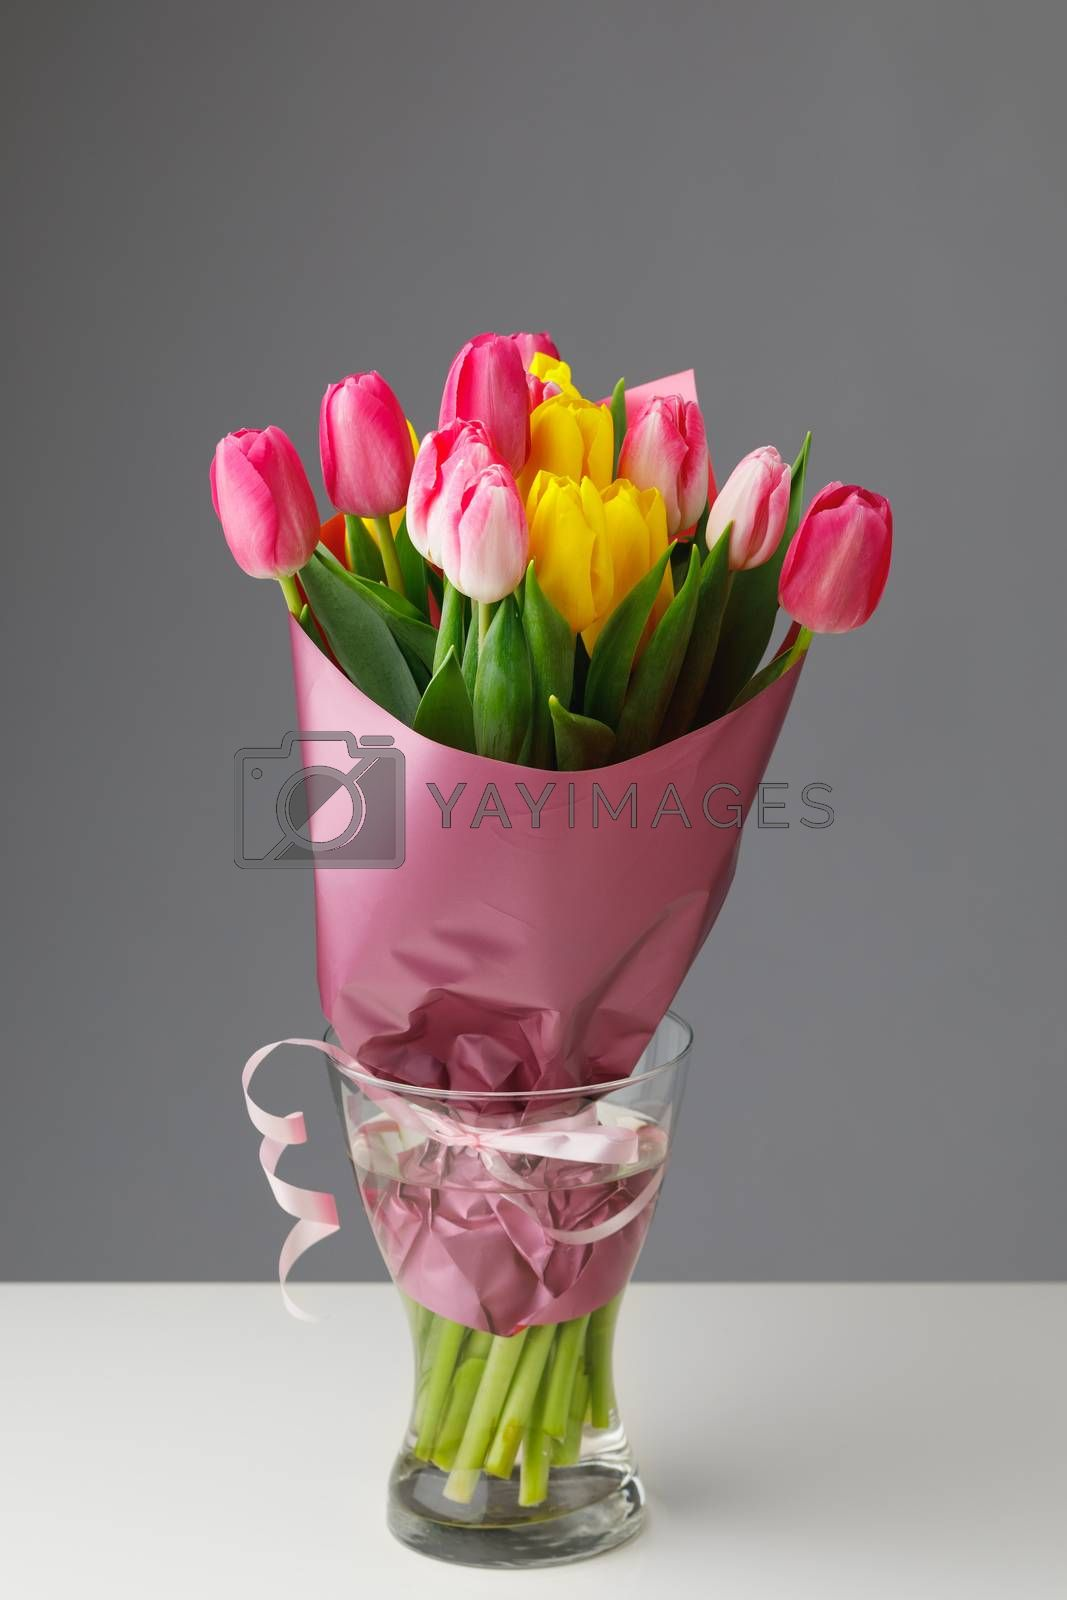 tulip flowers bouquet in a glass vase, gray background